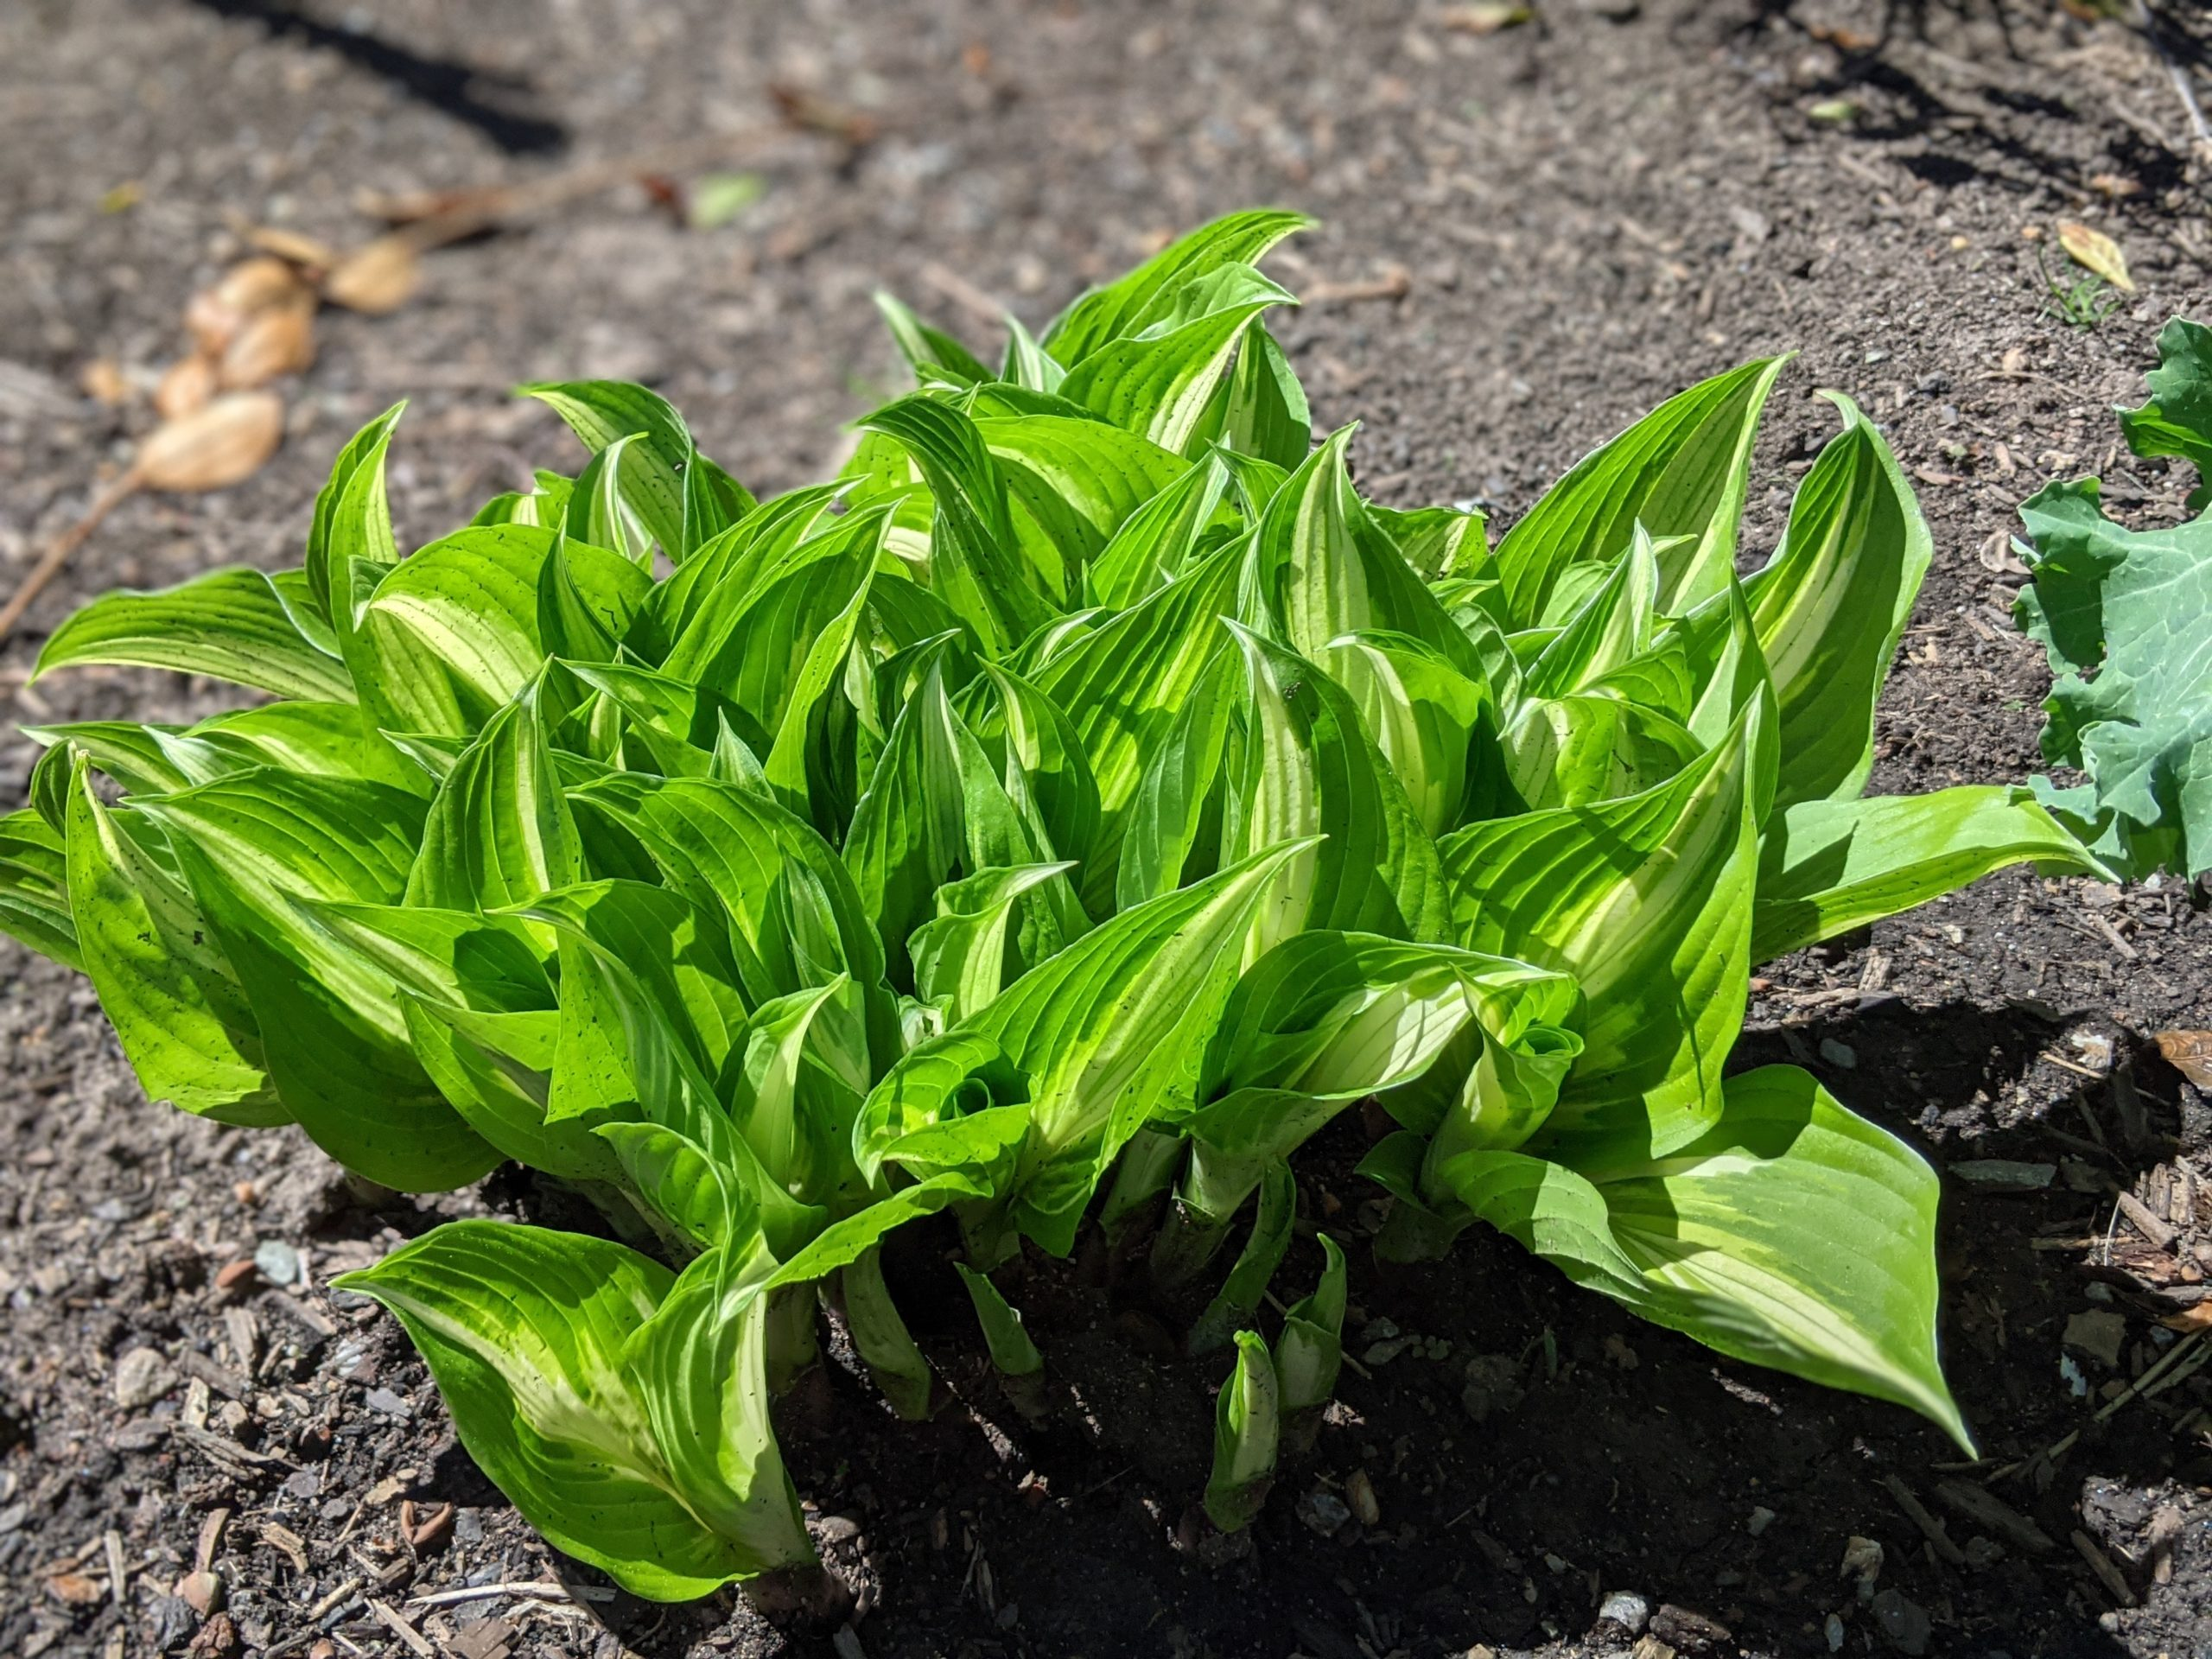 Hostas are also great for the shade. We have several varieties and love watching them unfurl like little scrolls as they emerge in the spring.